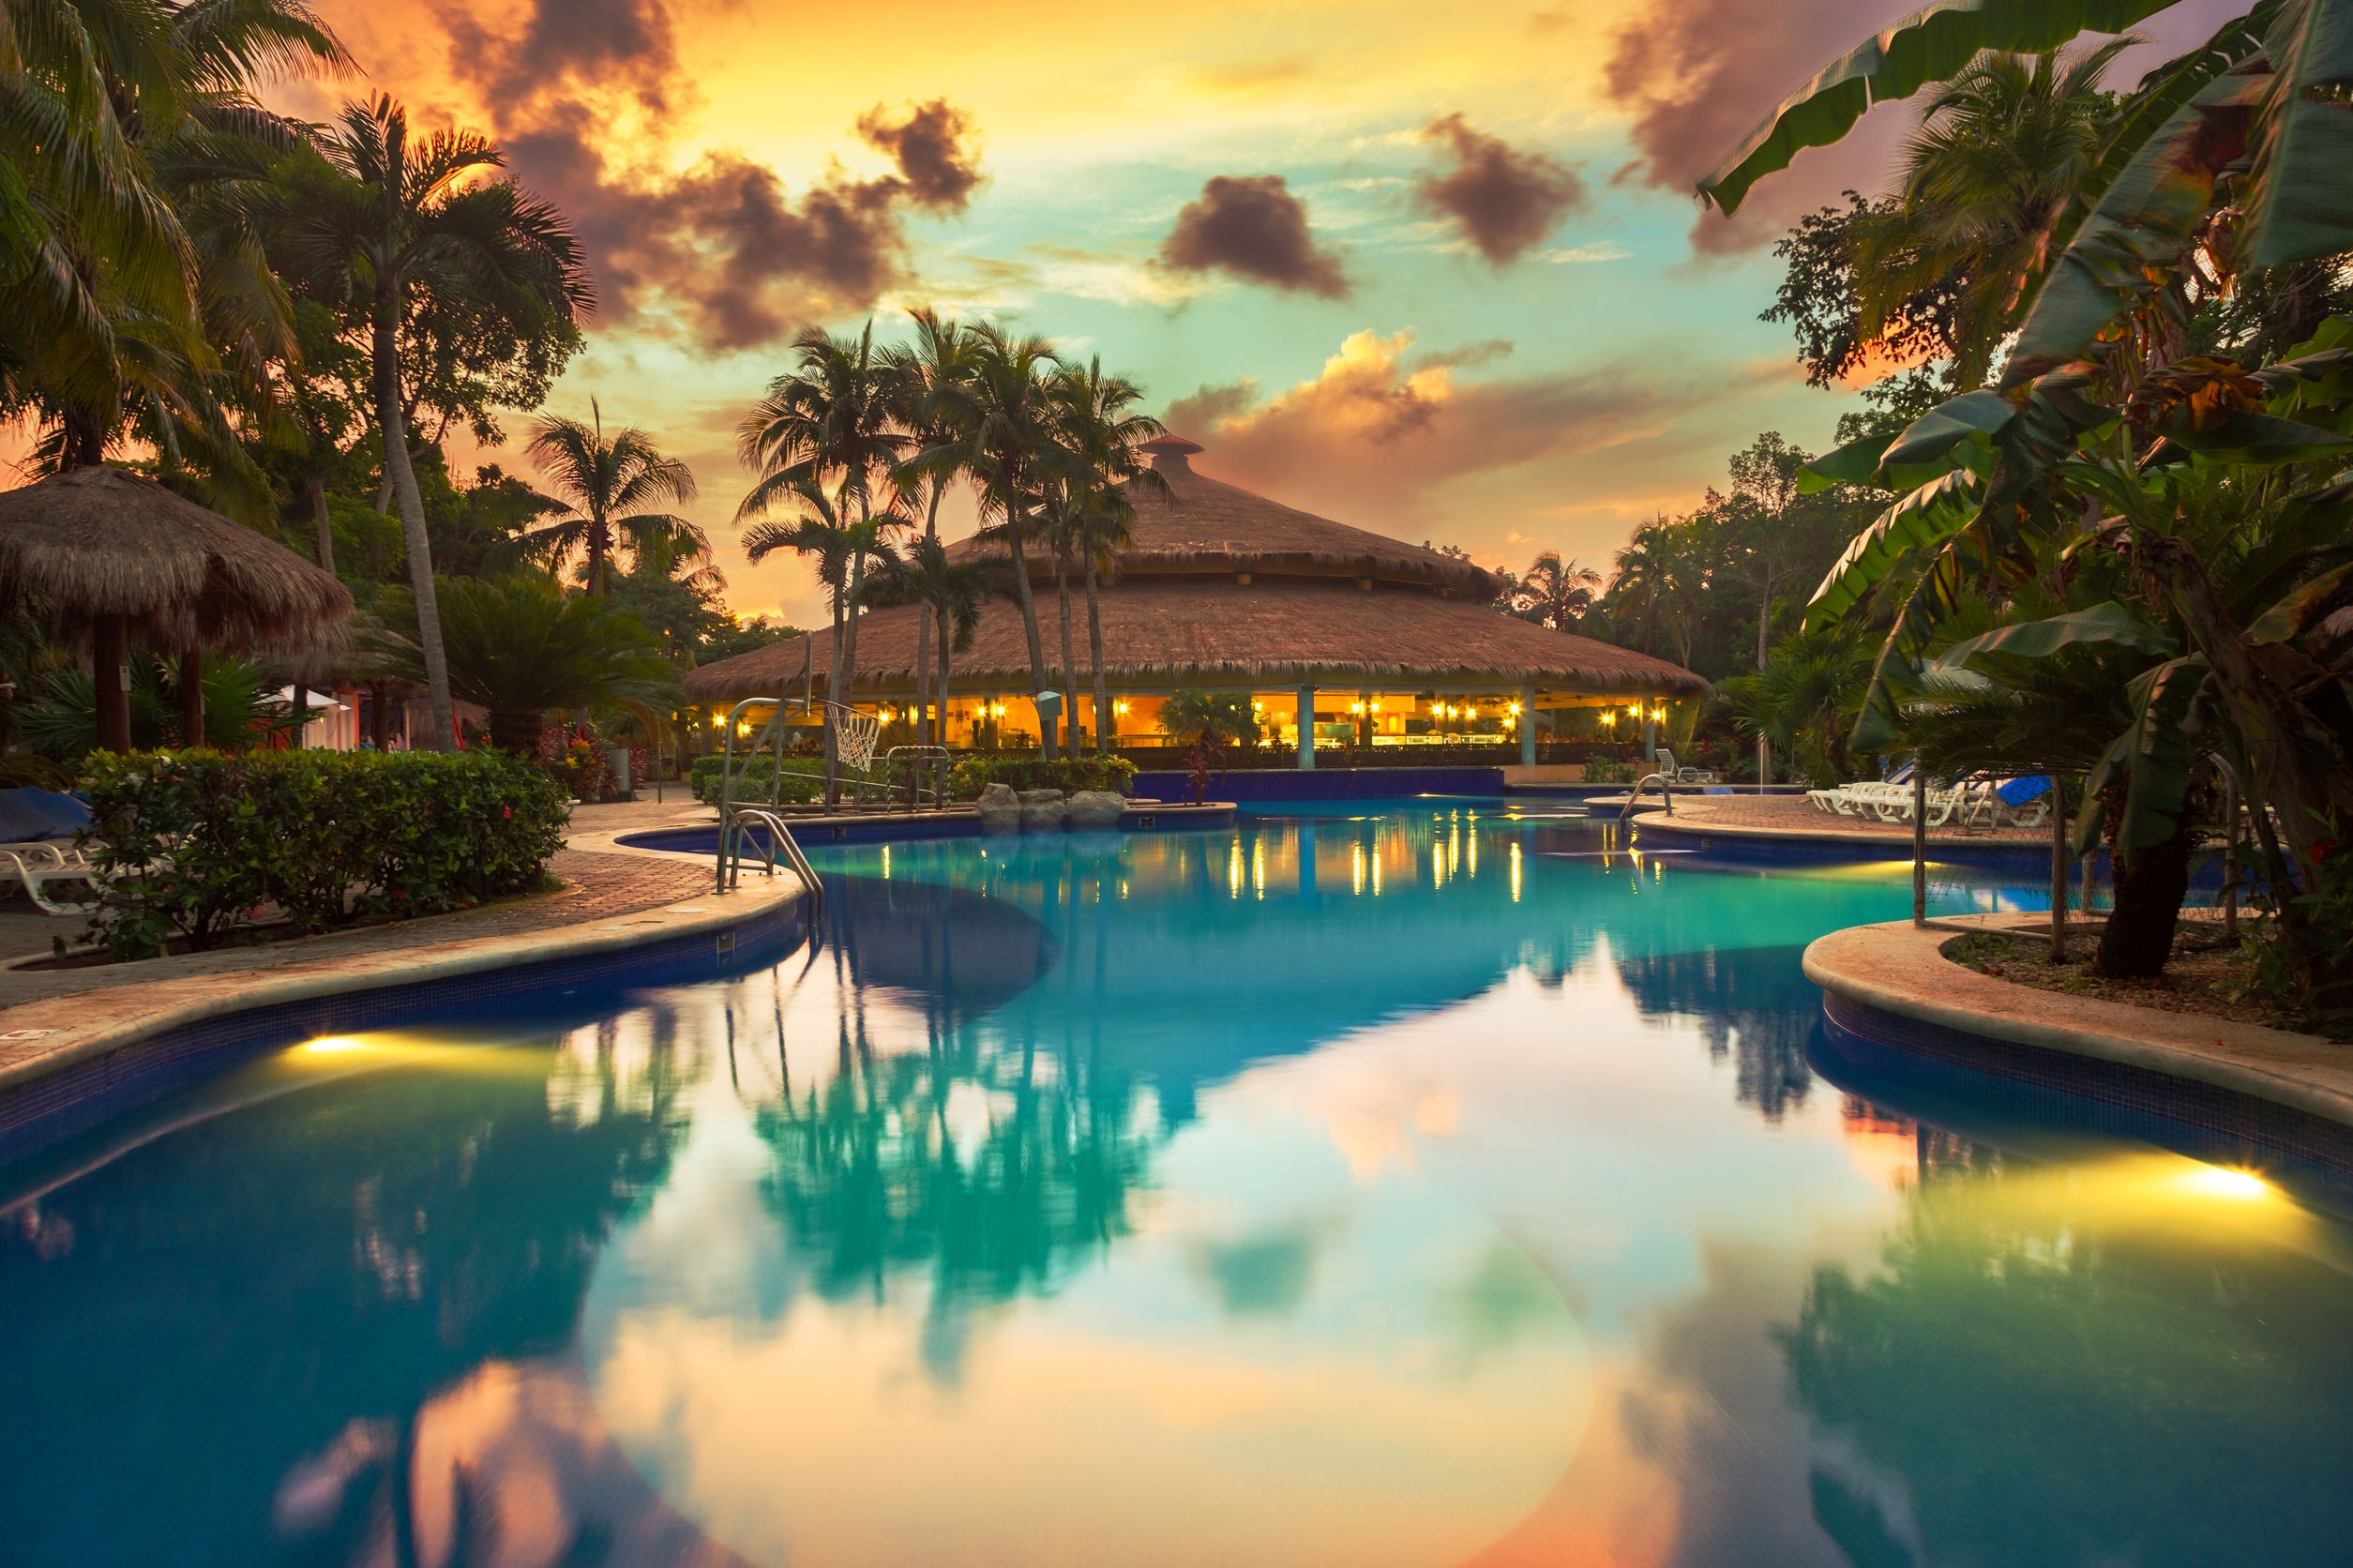 luxury tropical resort swimming pool